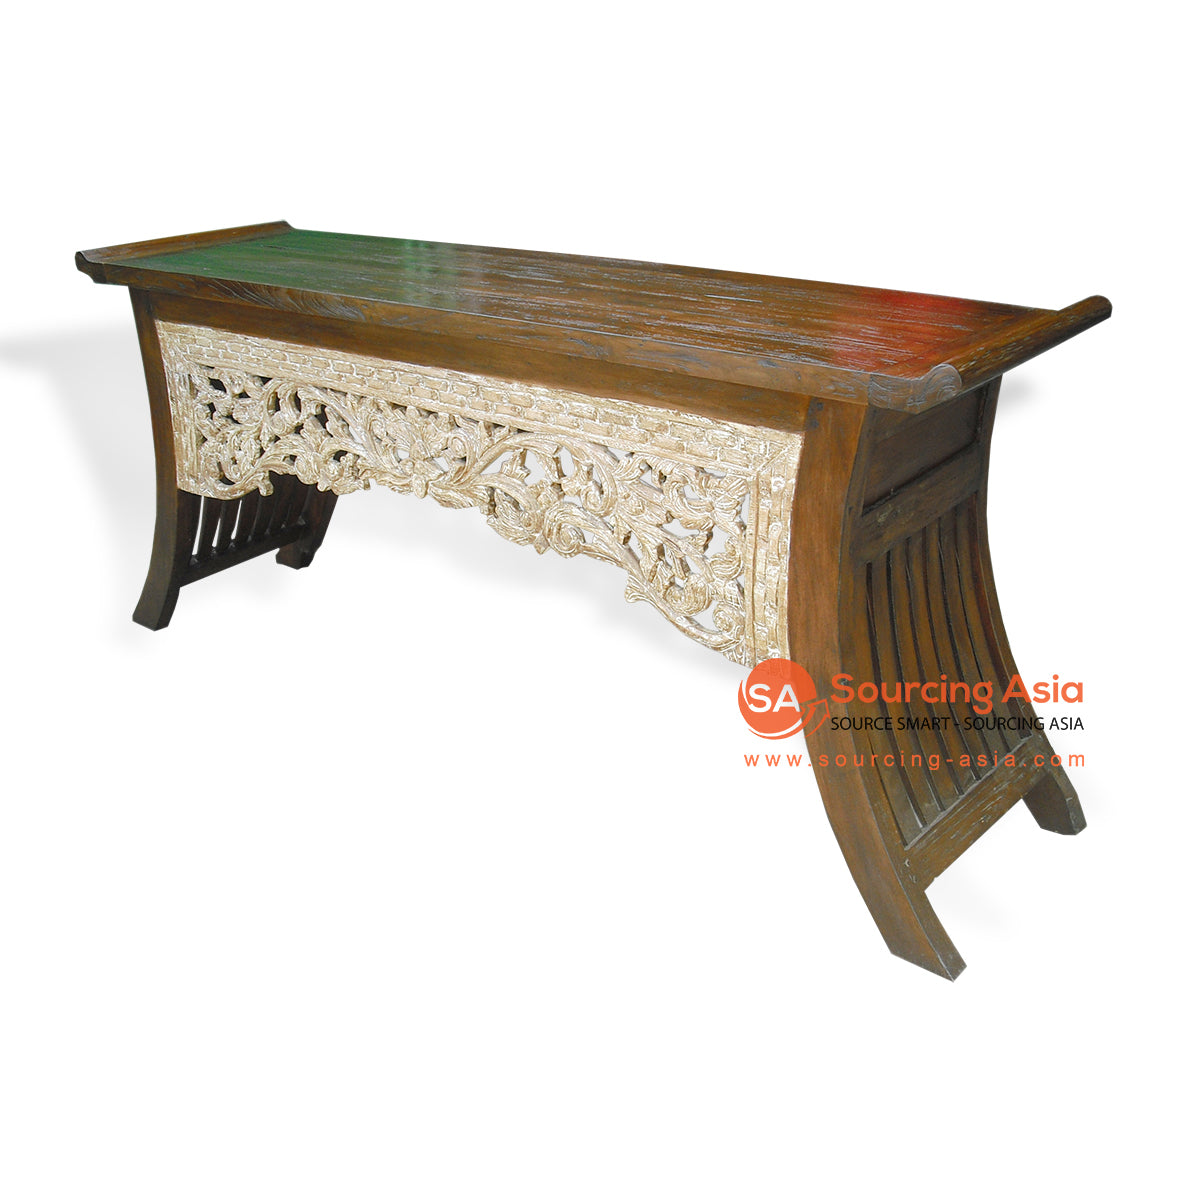 KYT10005-MB CARVED CONSOLE TABLE